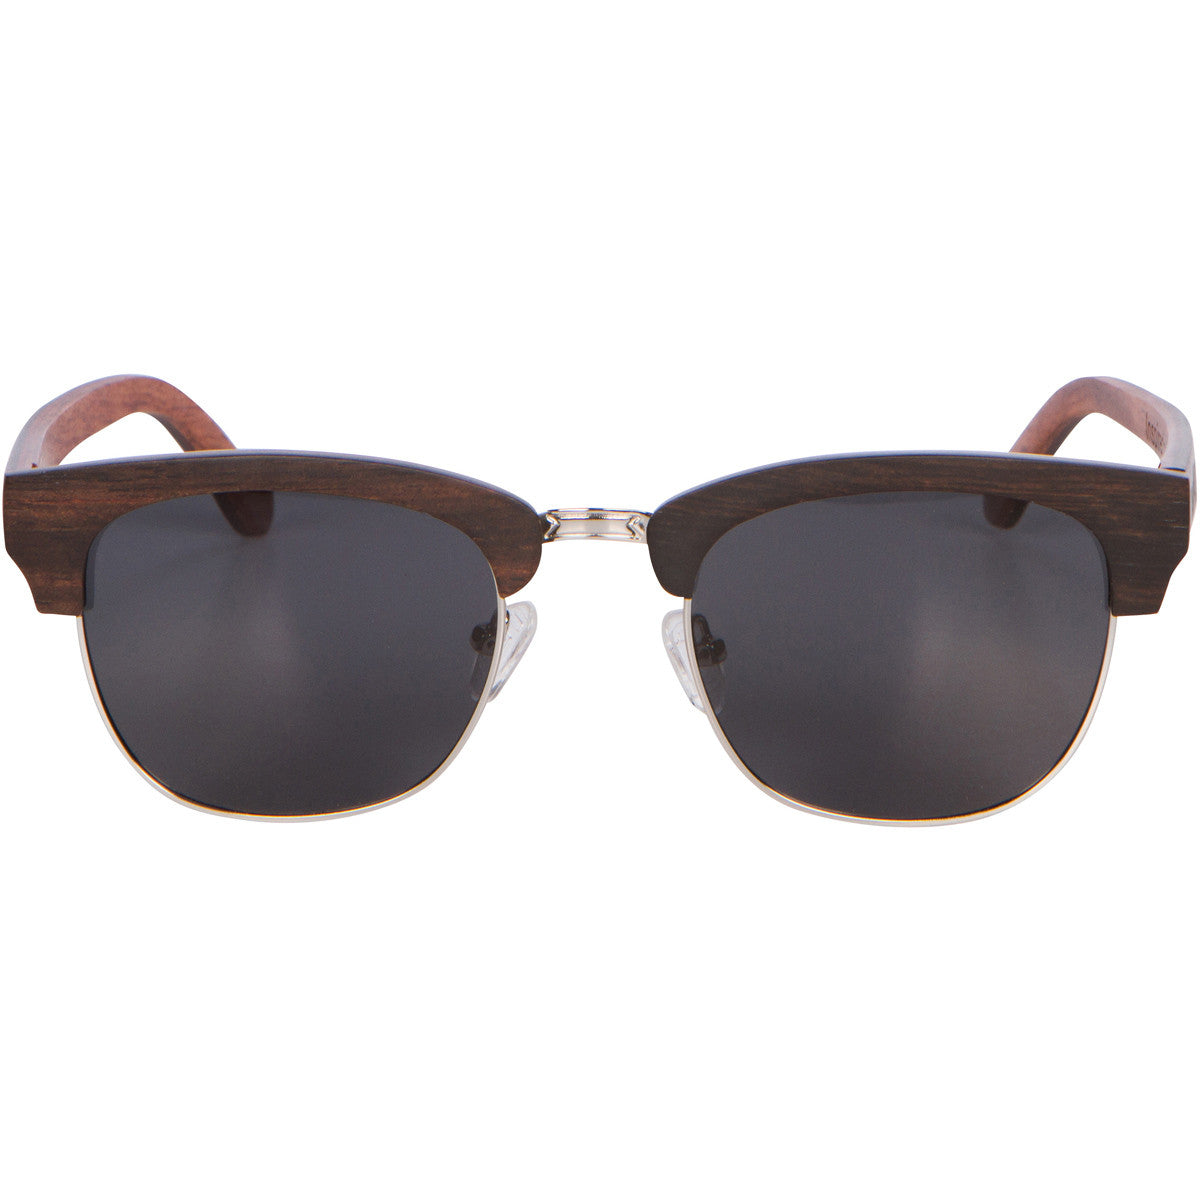 Vince Wood Sunglasses Black/Black